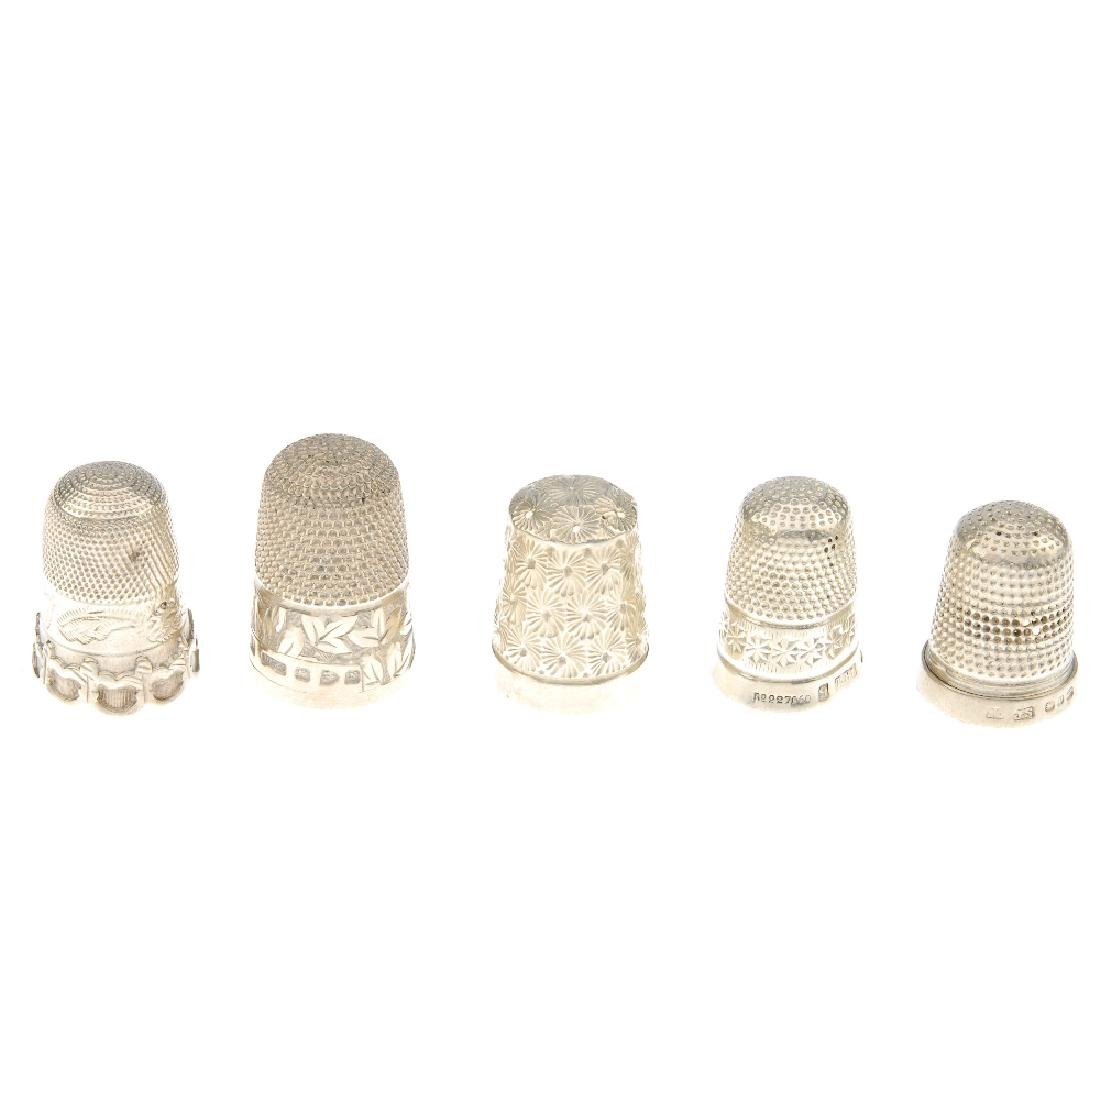 A selection of silver, white metal jewellery. To